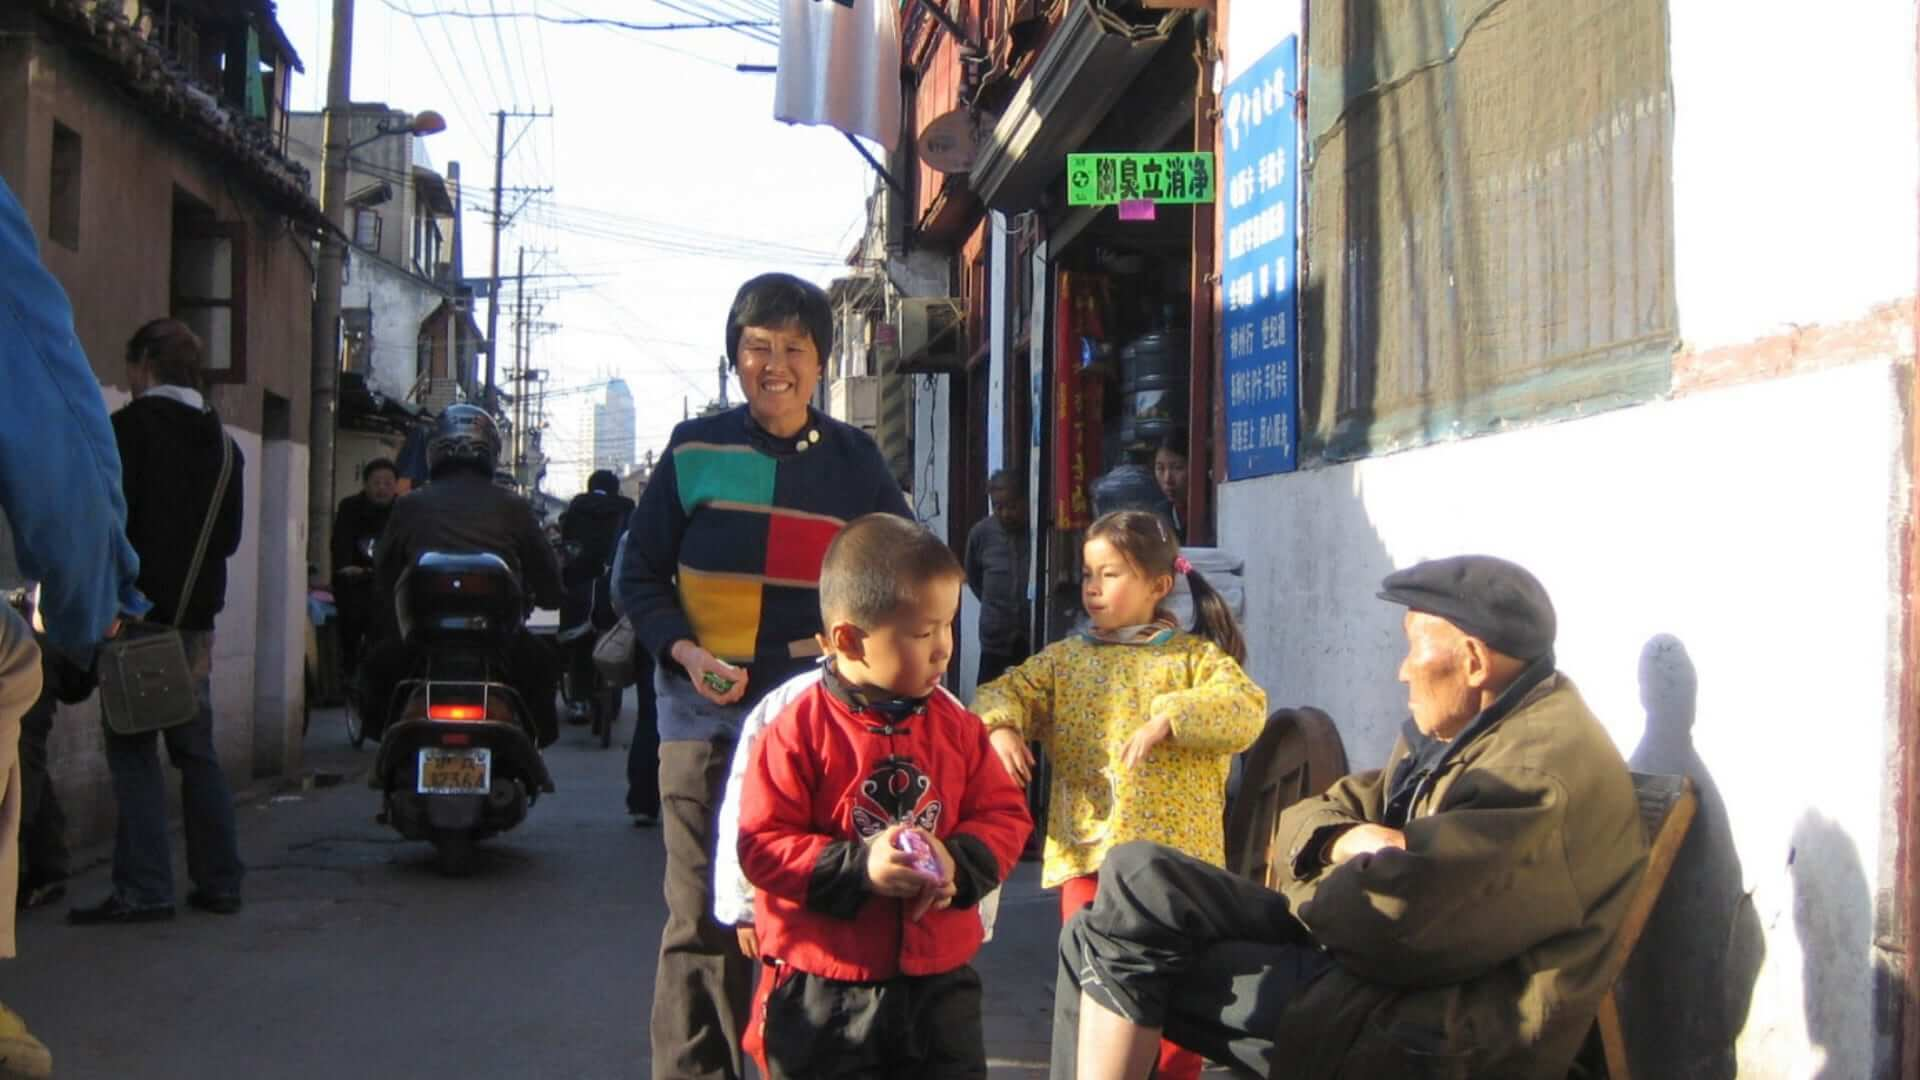 A Chinese woman is smiling and standing in a small street surrounded by other Chinese people in Shanghai.